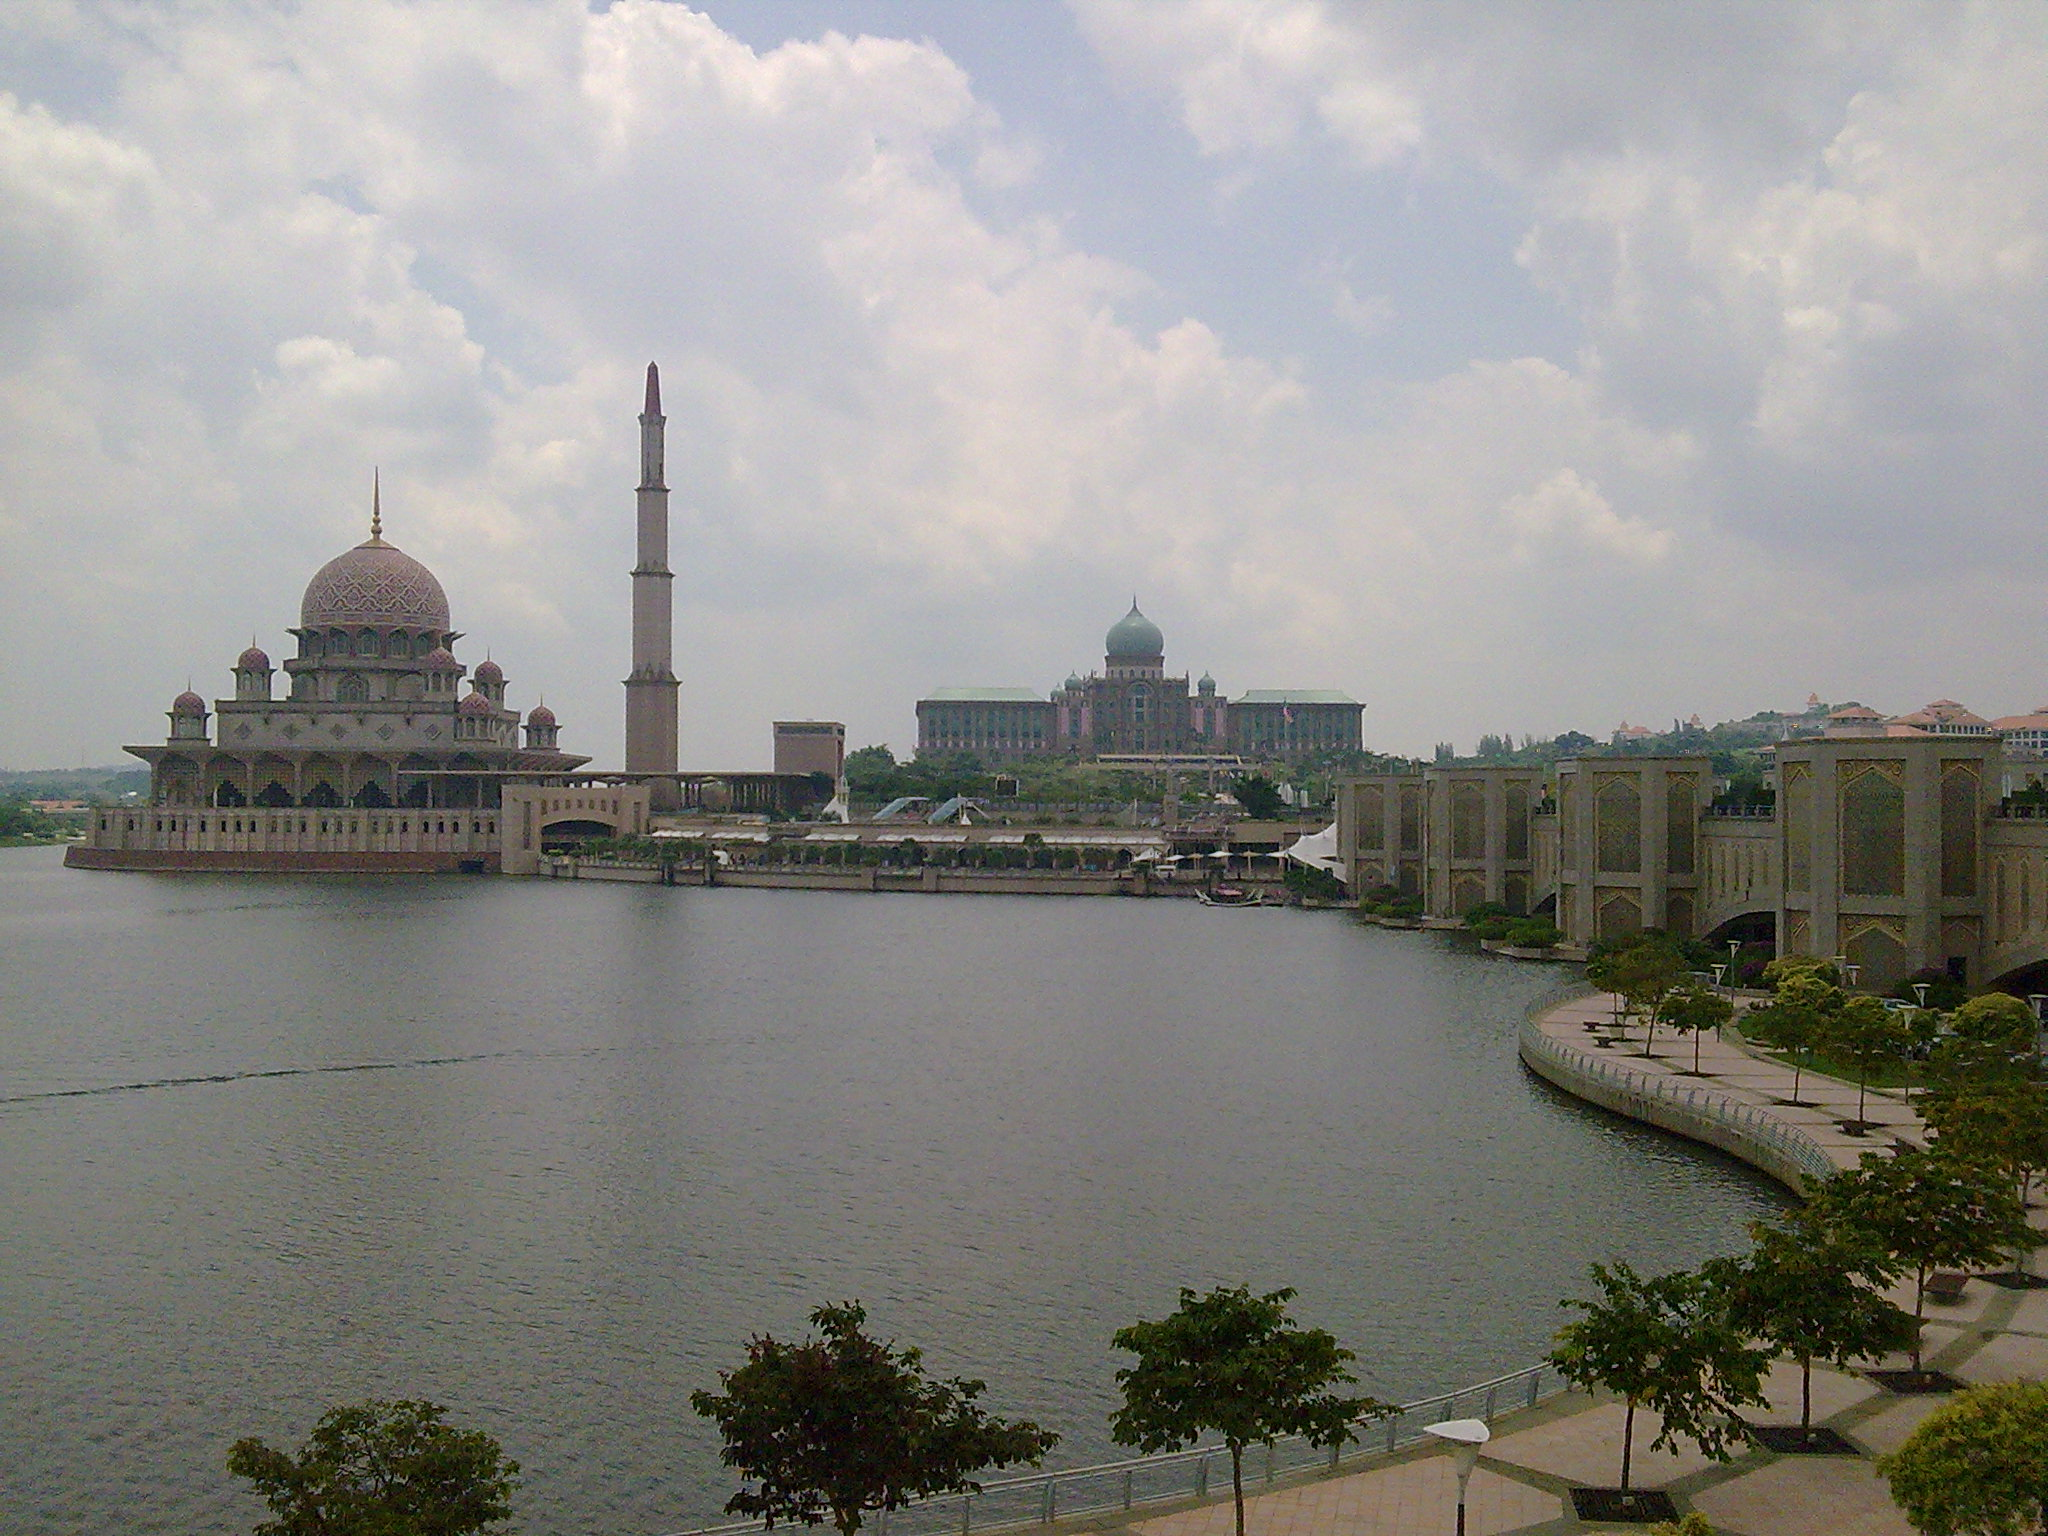 Masjid_Putrajaya Faszinierend Leiste Für Led Stripes Dekorationen